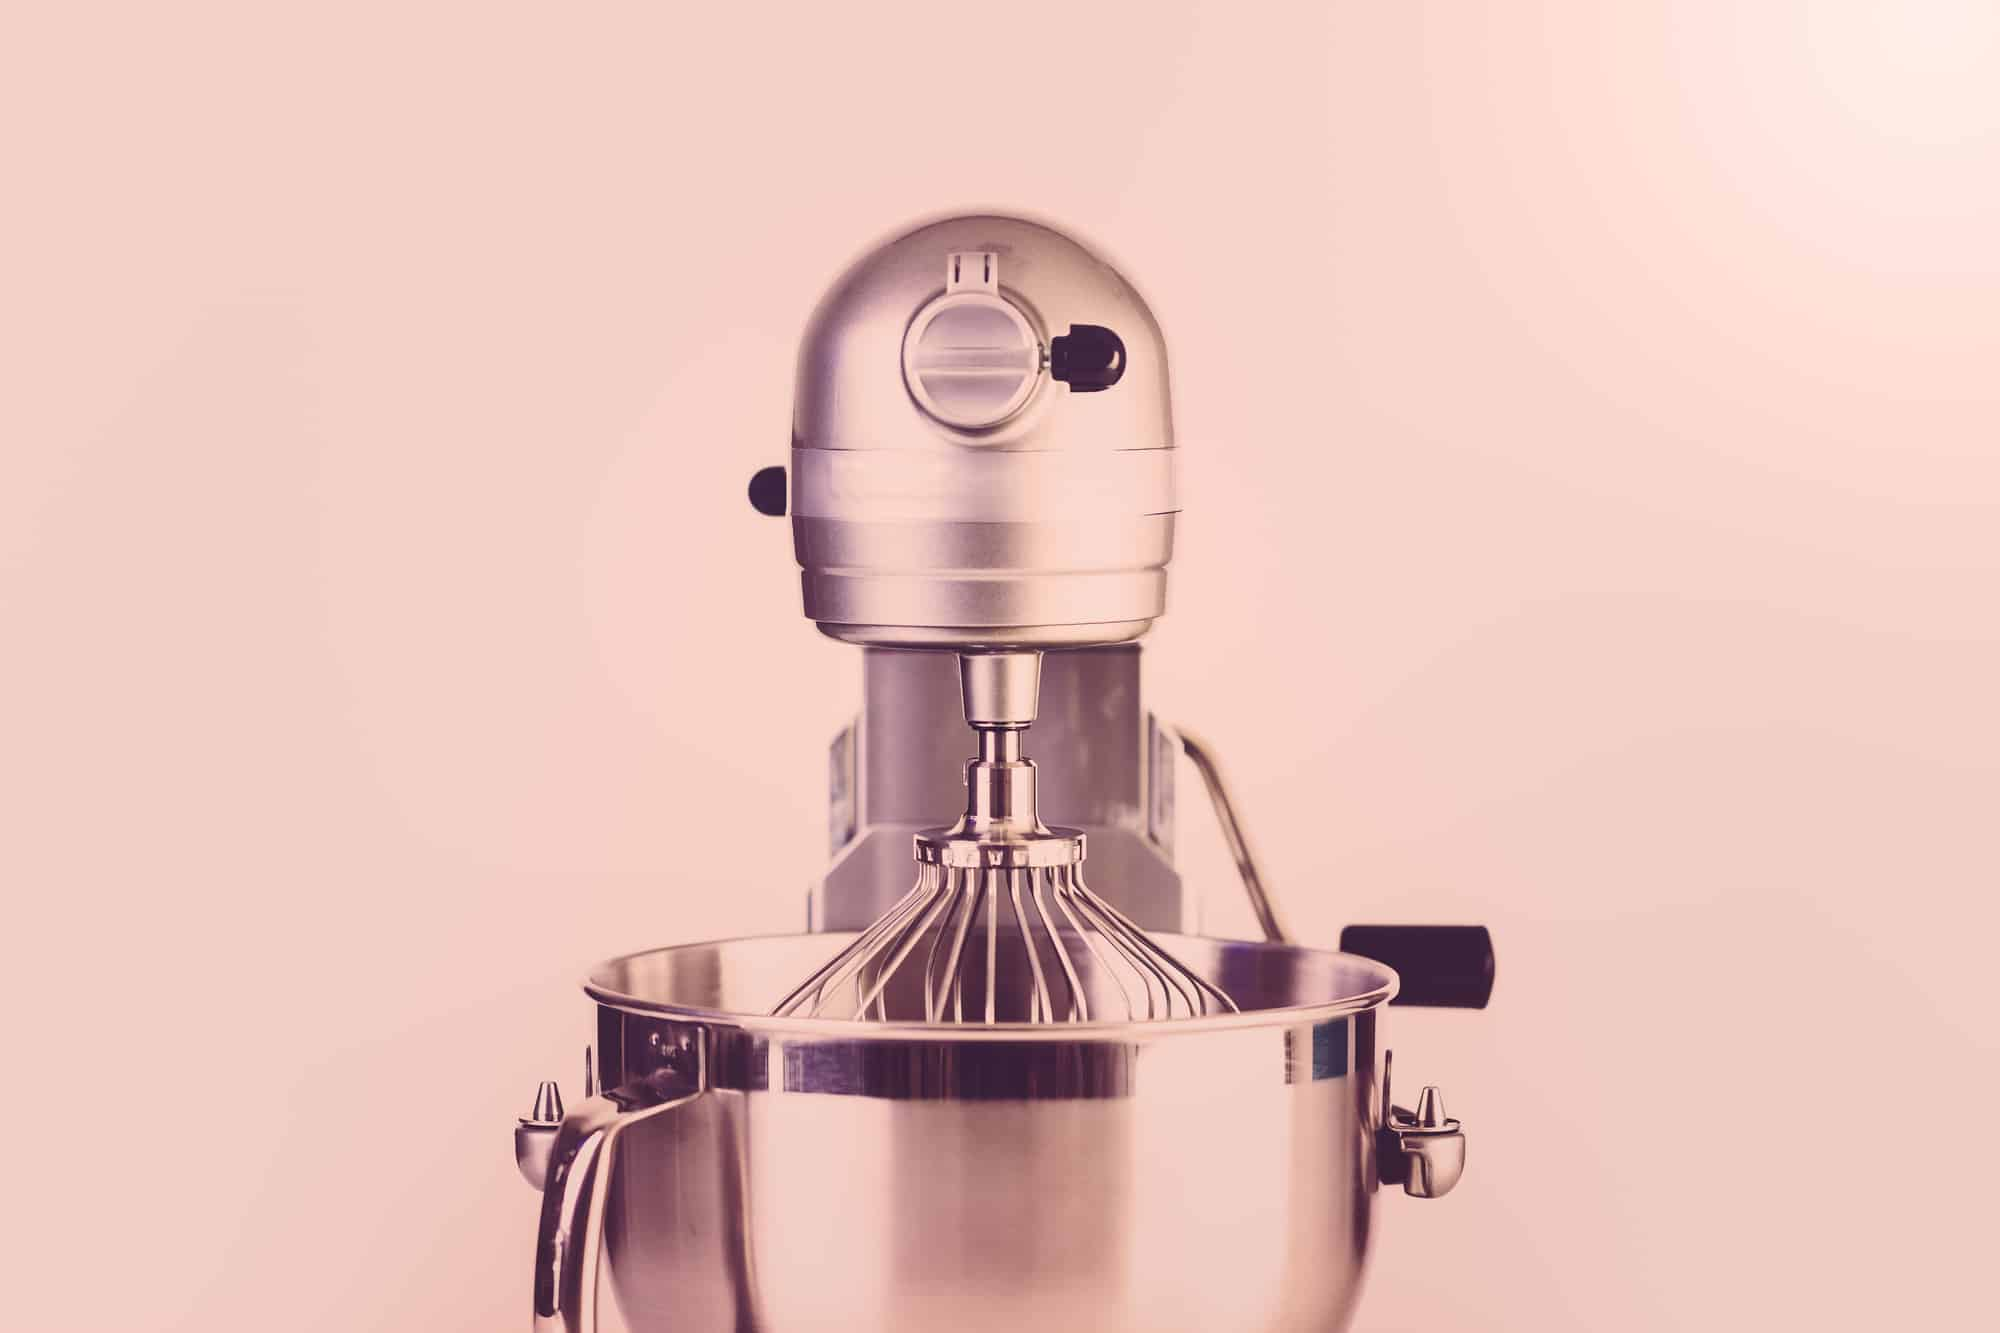 Factors to look for in a stand mixer